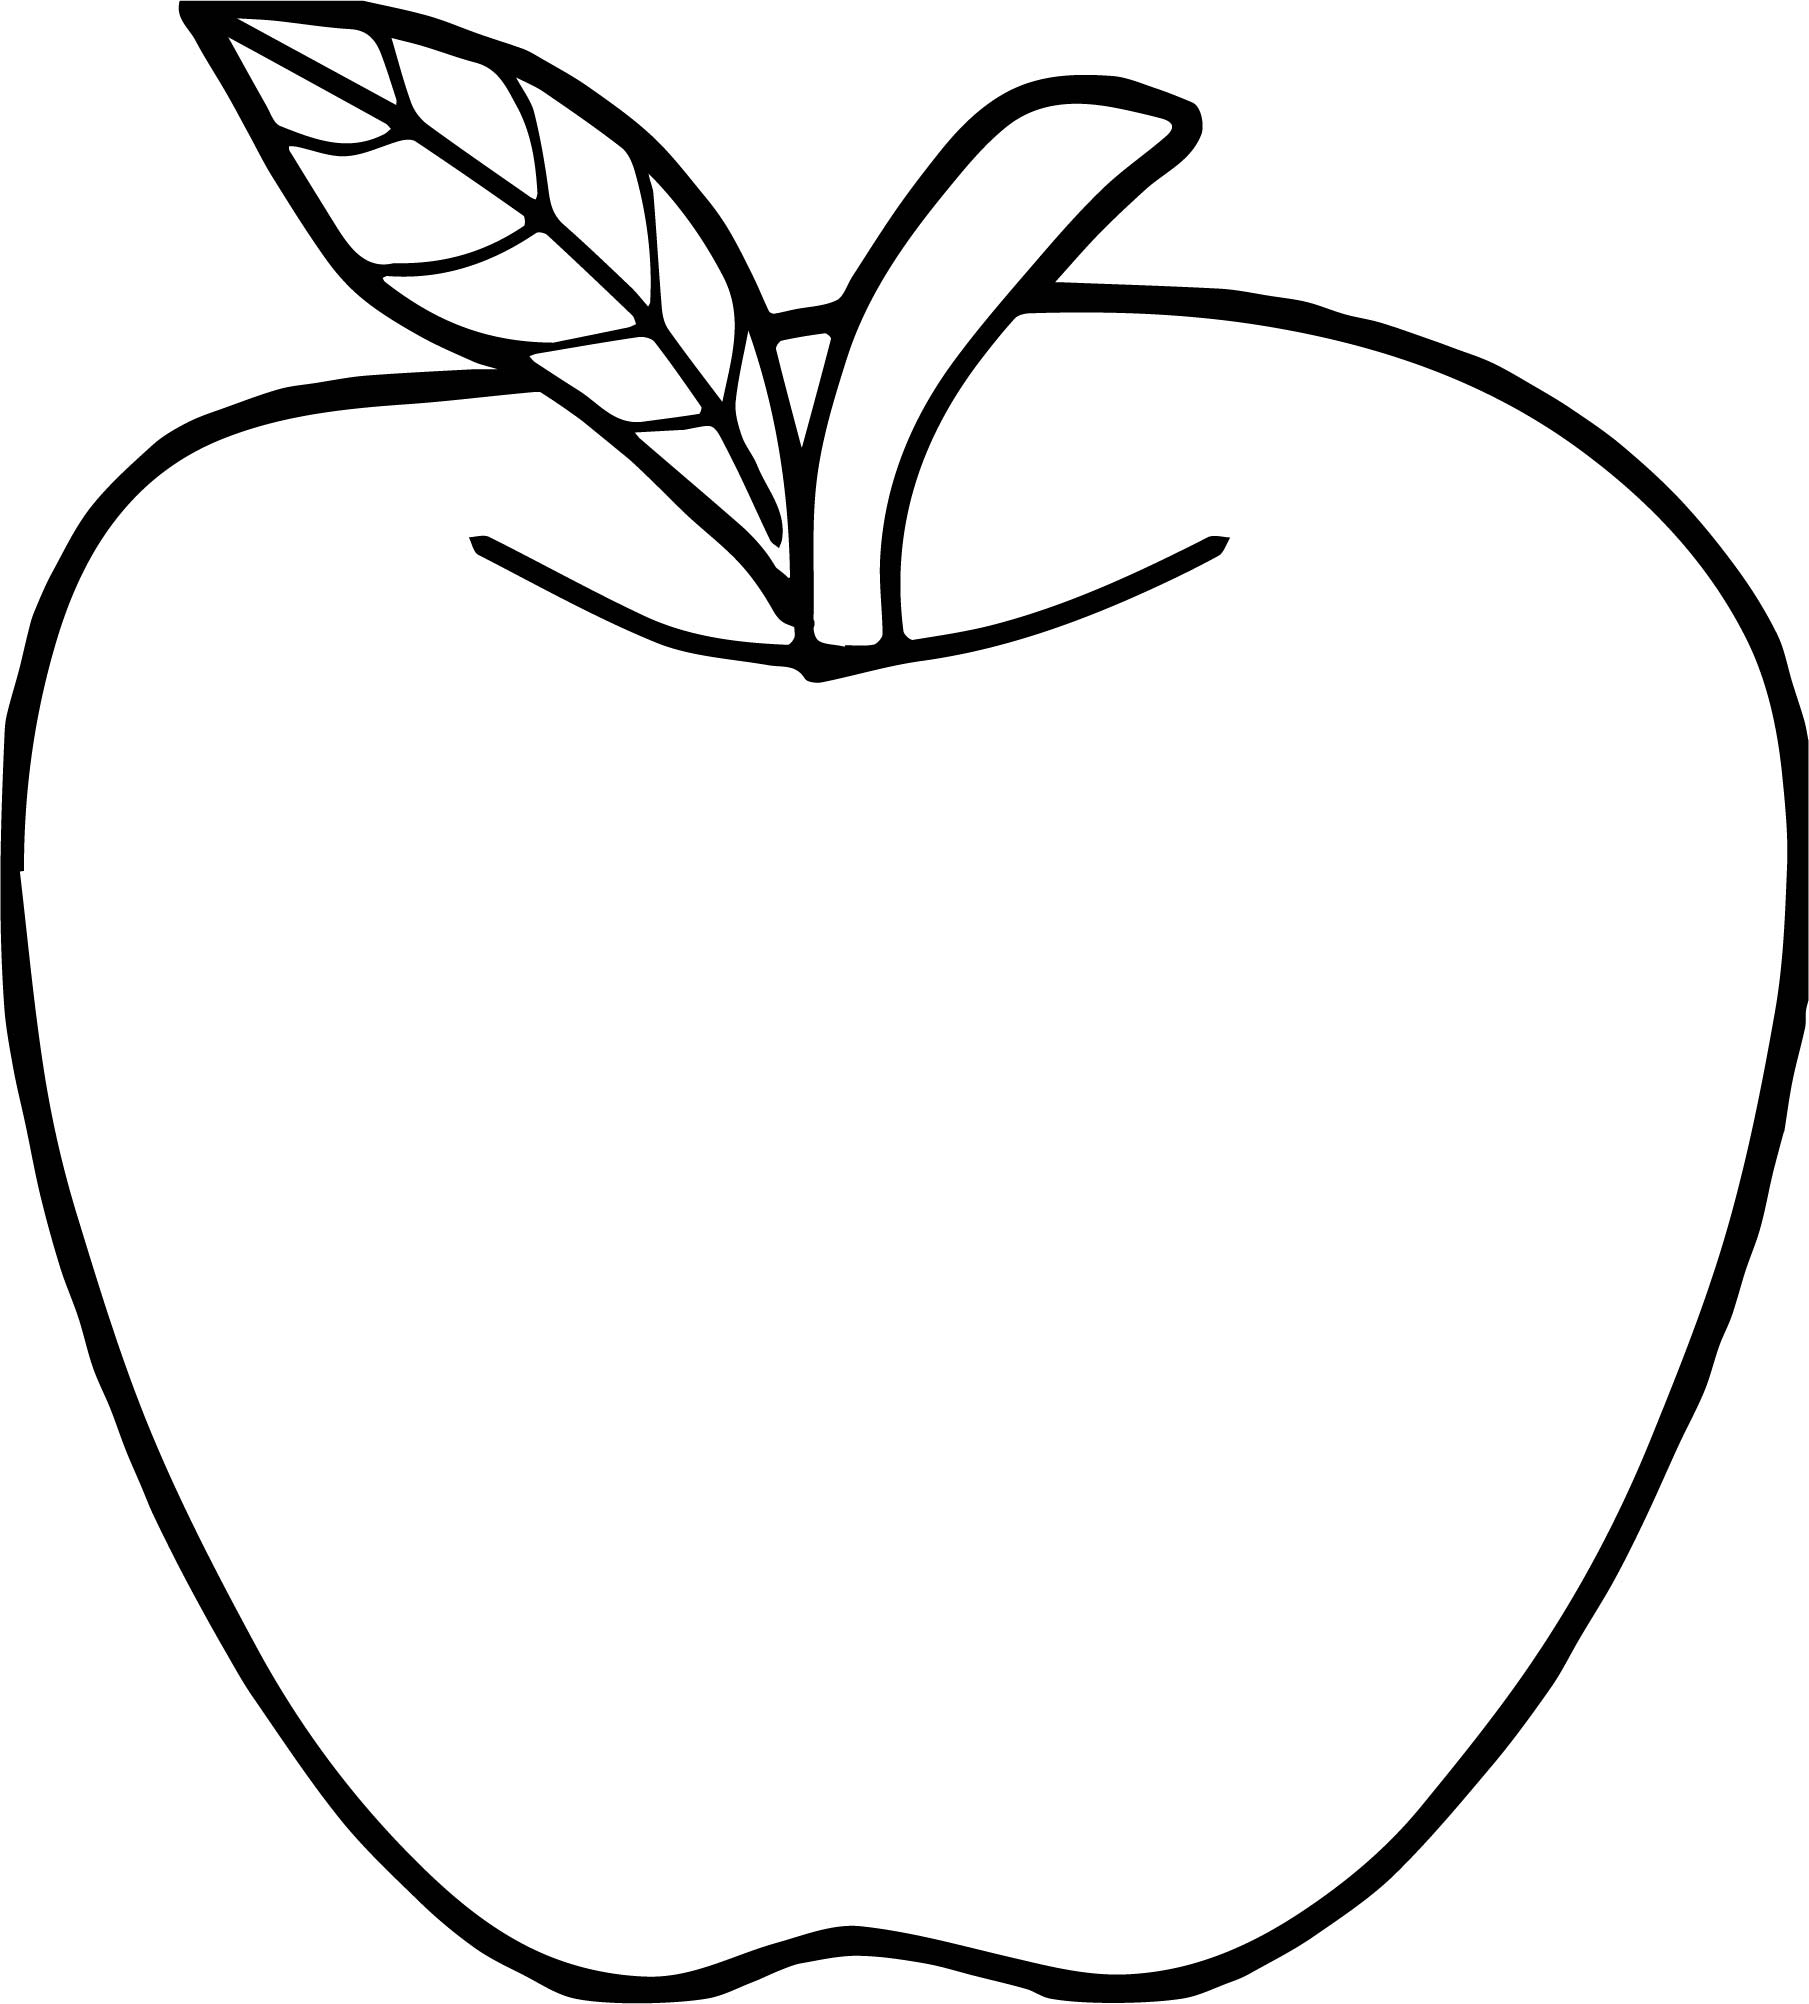 apple colouring images free printable apple coloring pages for kids apple images apple colouring